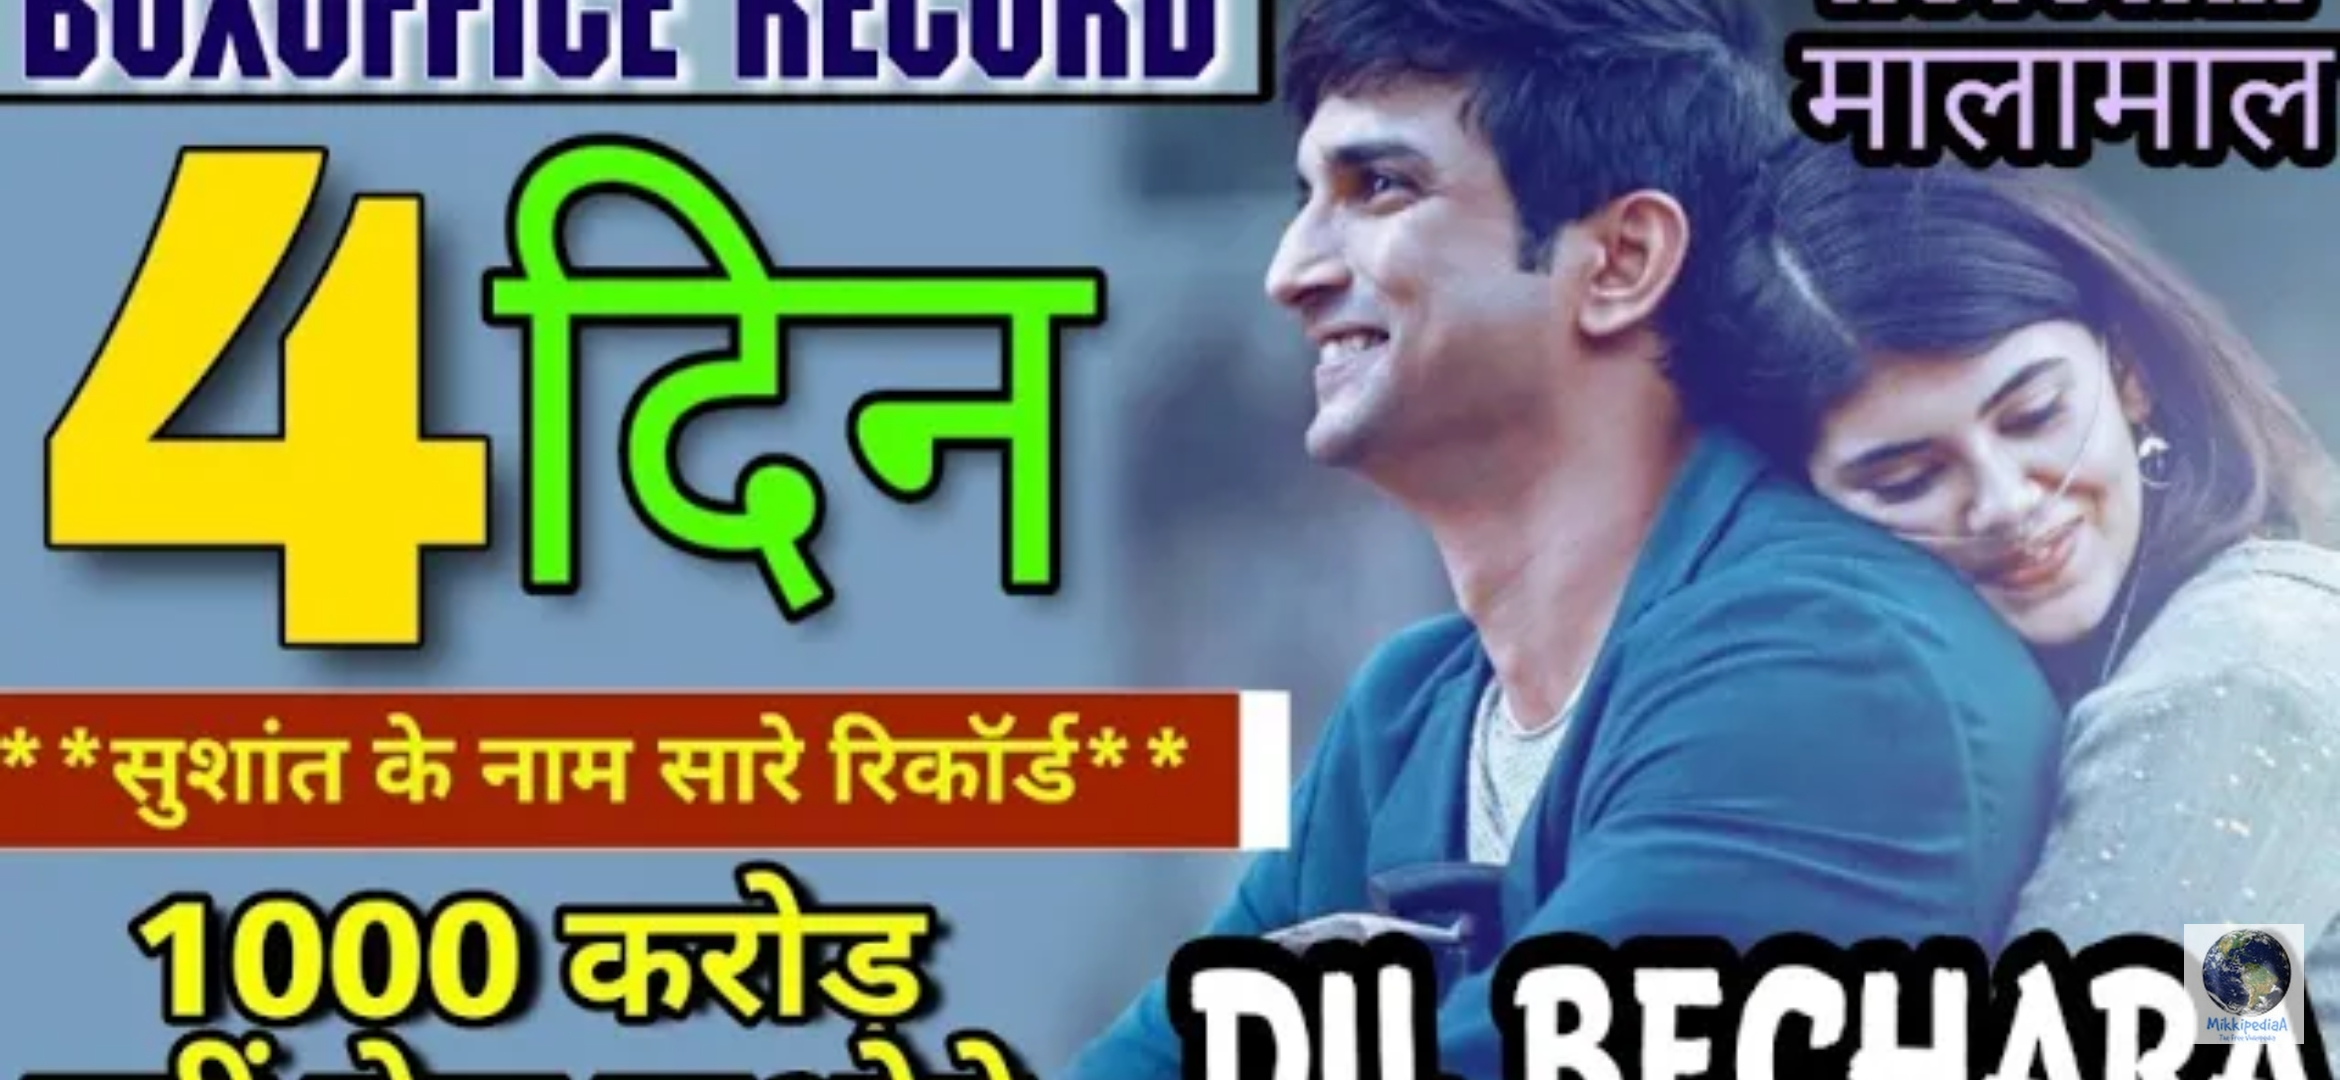 Dil bechara movie 4 days box office collection